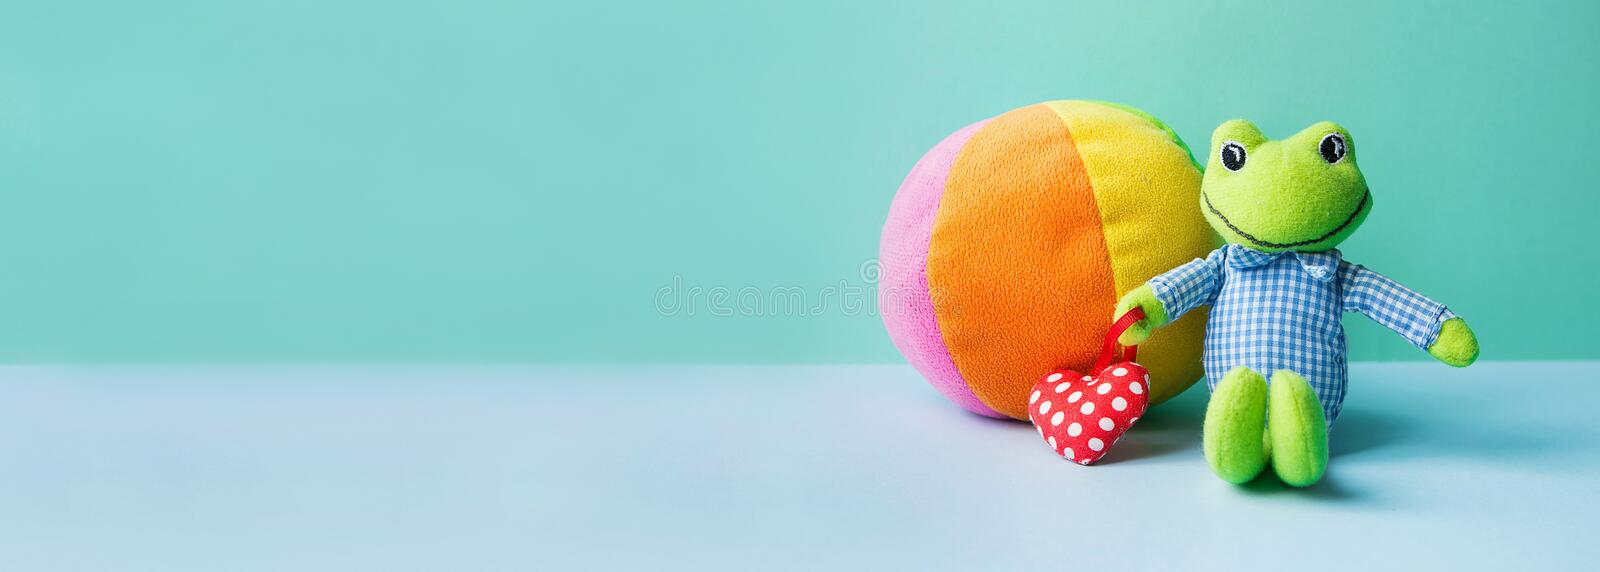 Kids Toys Small Frog Holding Red Heart Multicolored Textile Soft Ball on Blue Green Background. Banner Charity Nursery Hospital royalty free stock image